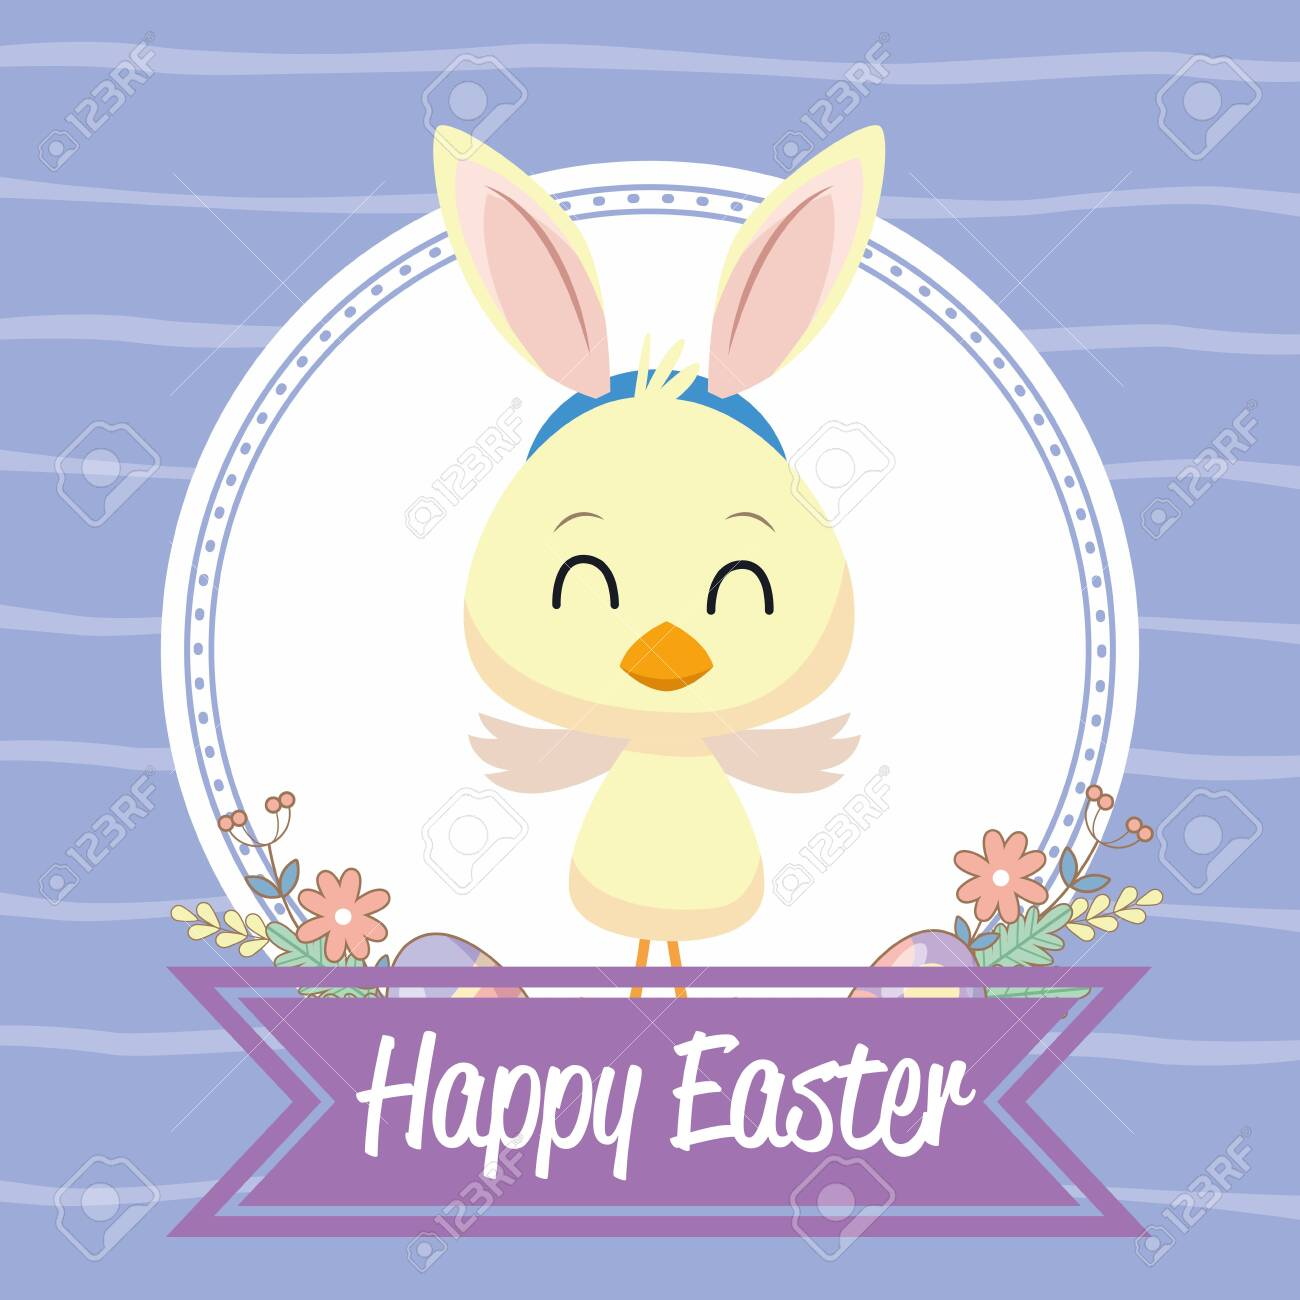 happy easter seasonal card with little chick using rabbit ears vector illustration design - 142085199